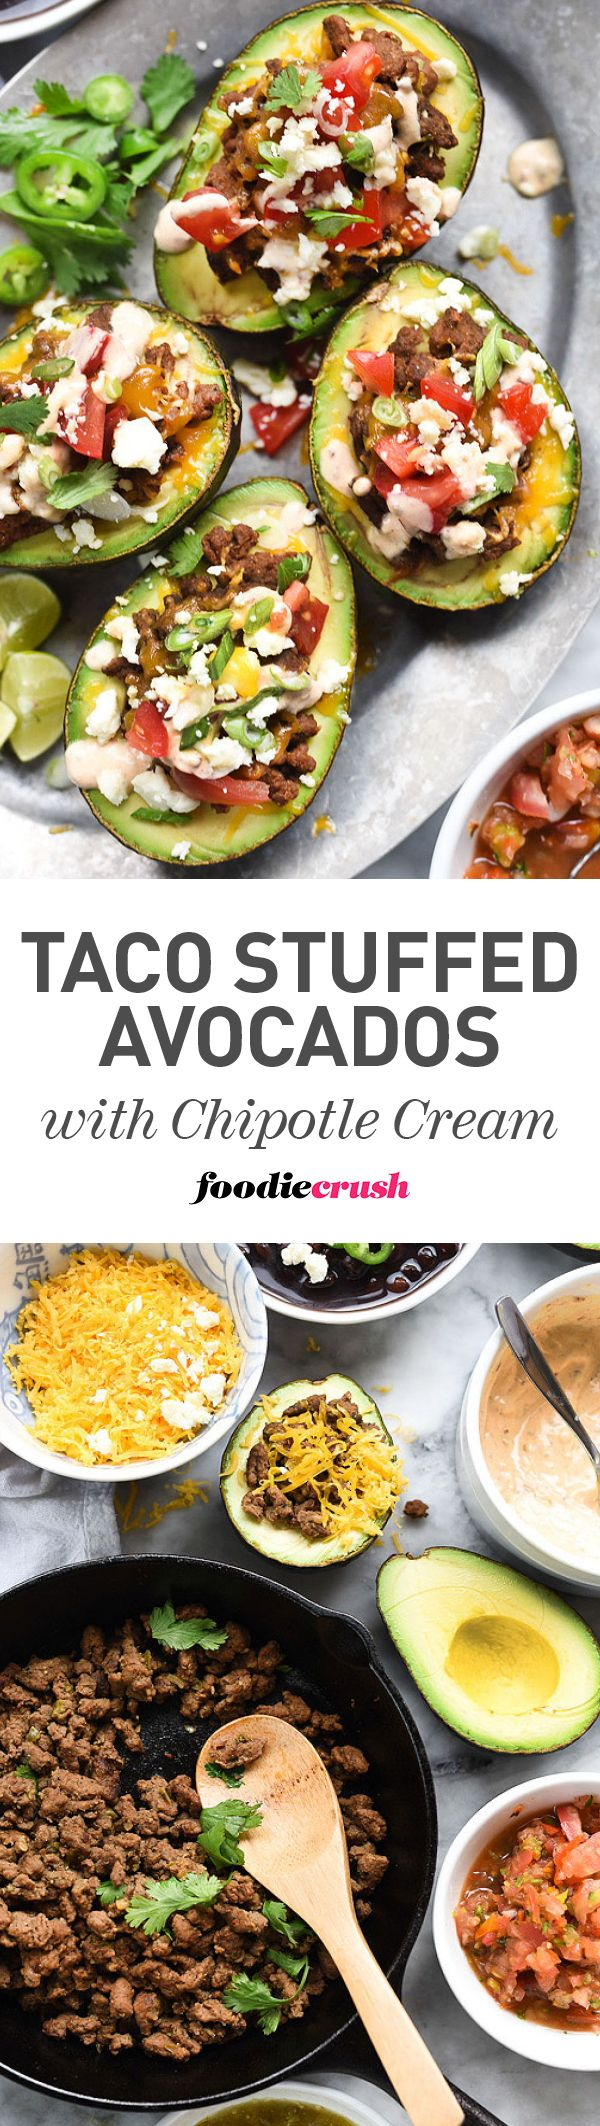 Creamy avocados are the shell for easy weeknight beef tacos with chipotle flavored sour cream for a taco night twist | foodiecrush.com #tacos #avocados #ad #Hormel